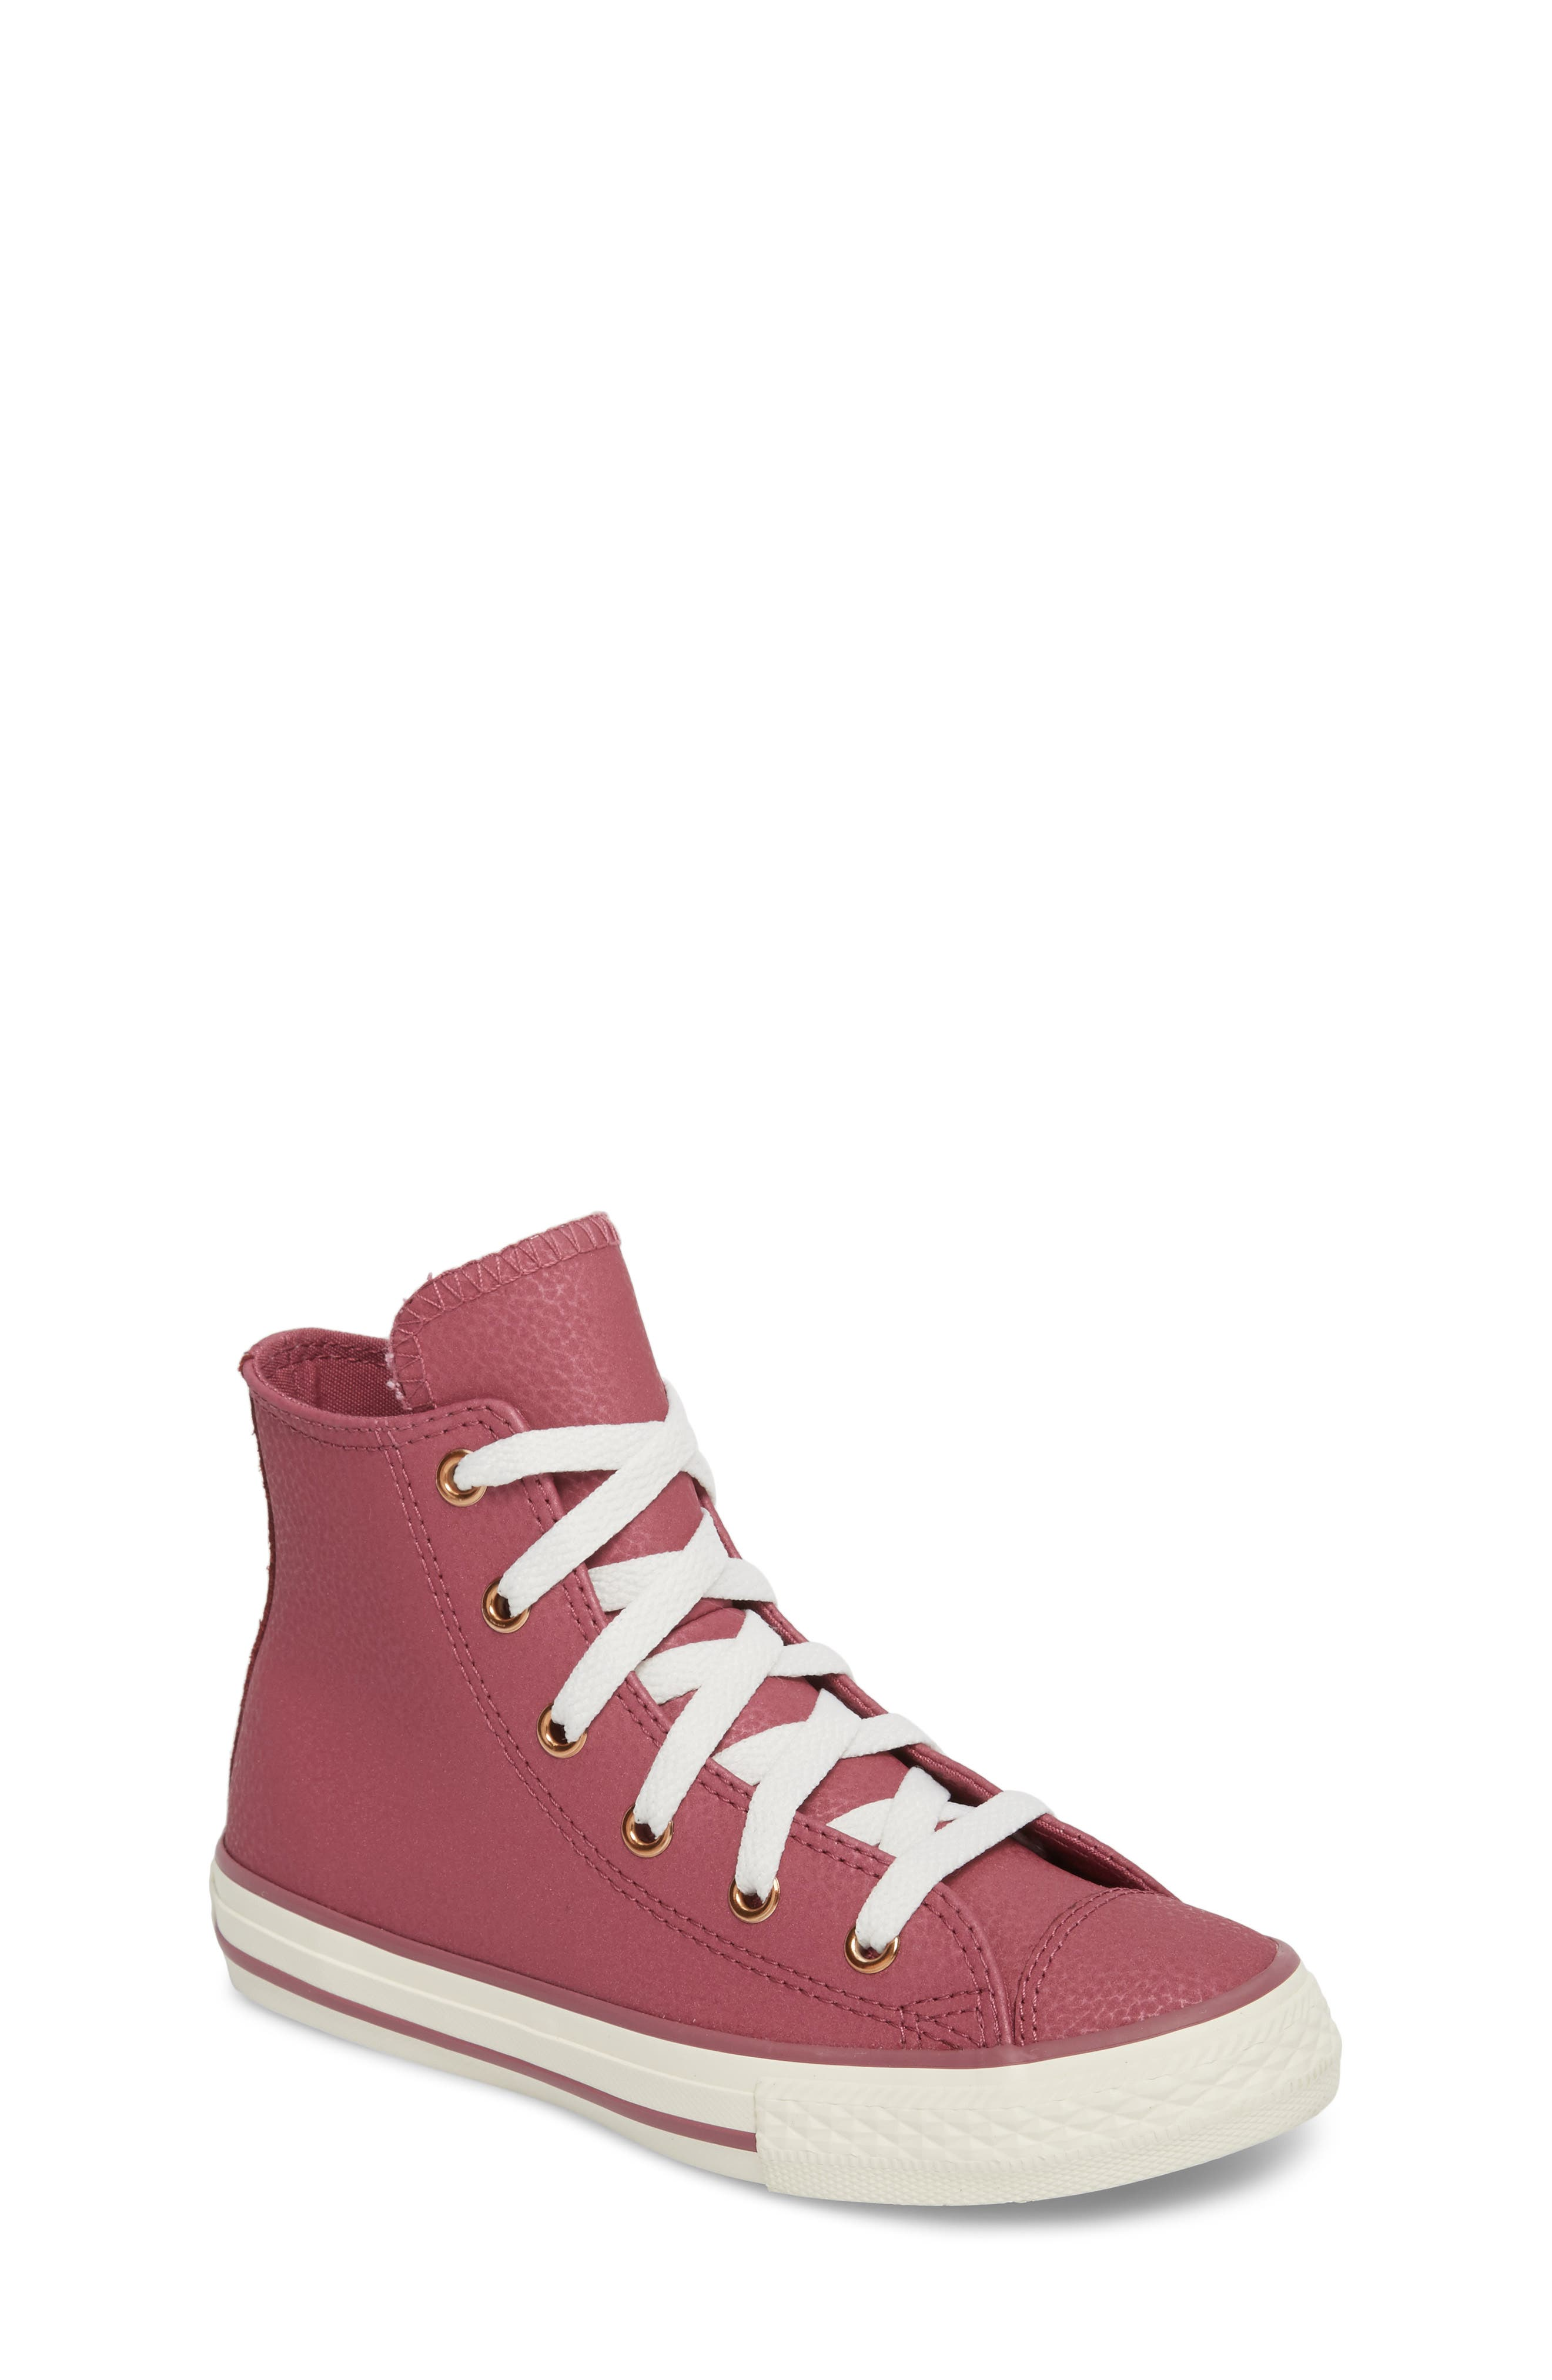 Chuck Taylor<sup>®</sup> All Star<sup>®</sup> High Top Sneaker,                         Main,                         color, 600